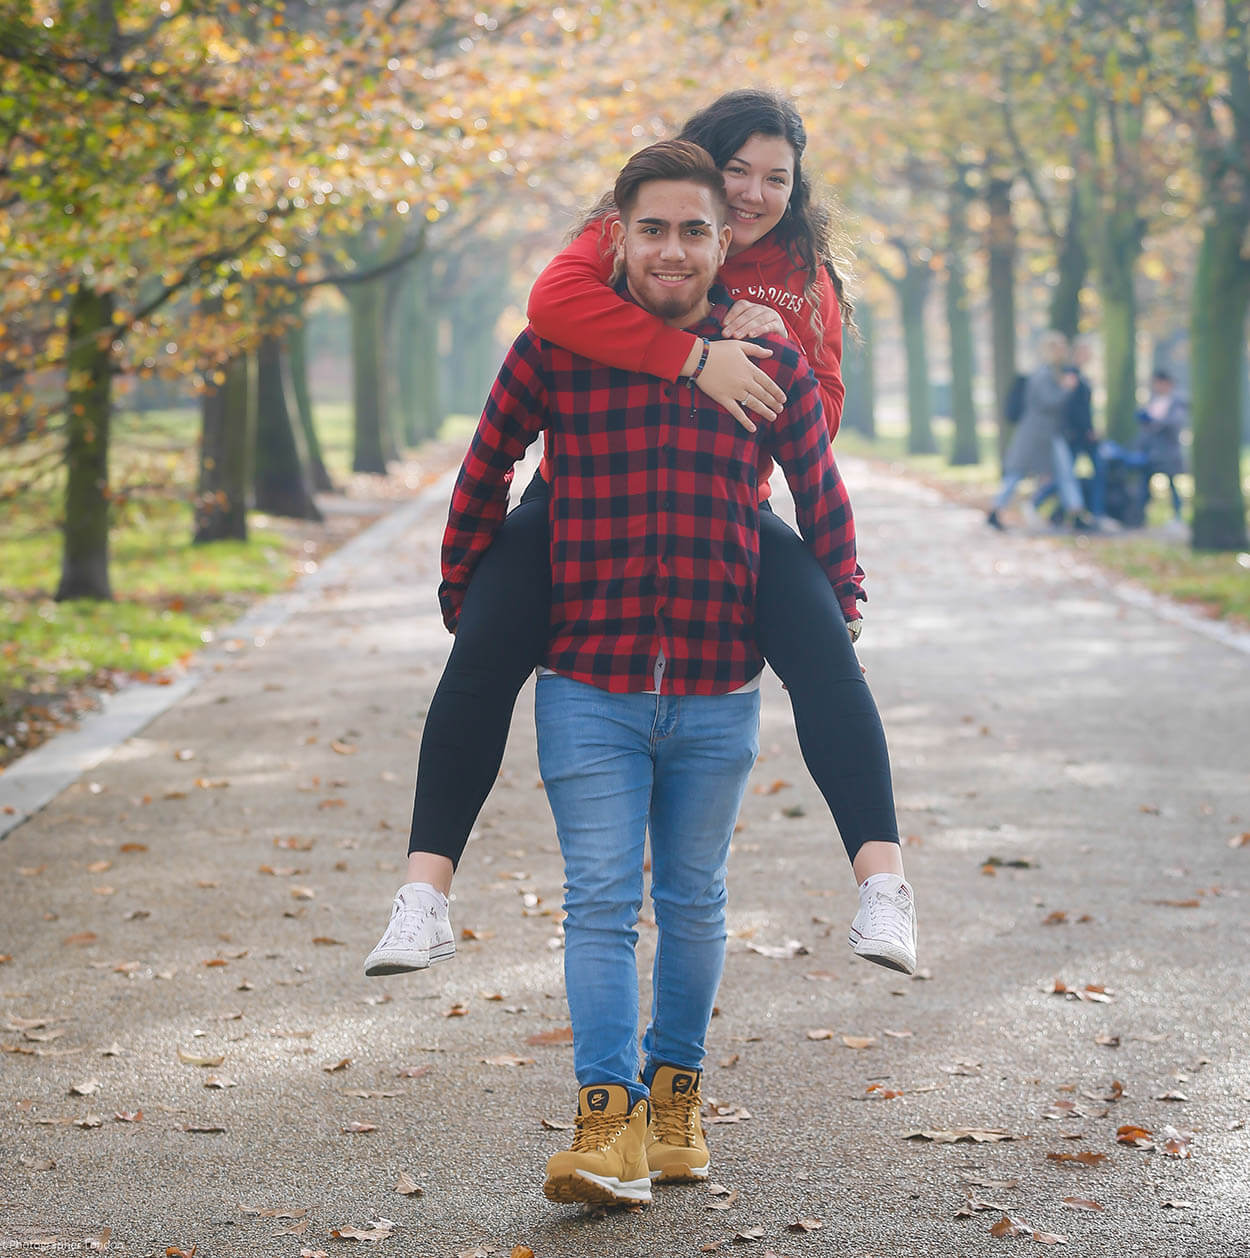 Dalma & Lucas - Couples Photo Session Greenwich Park